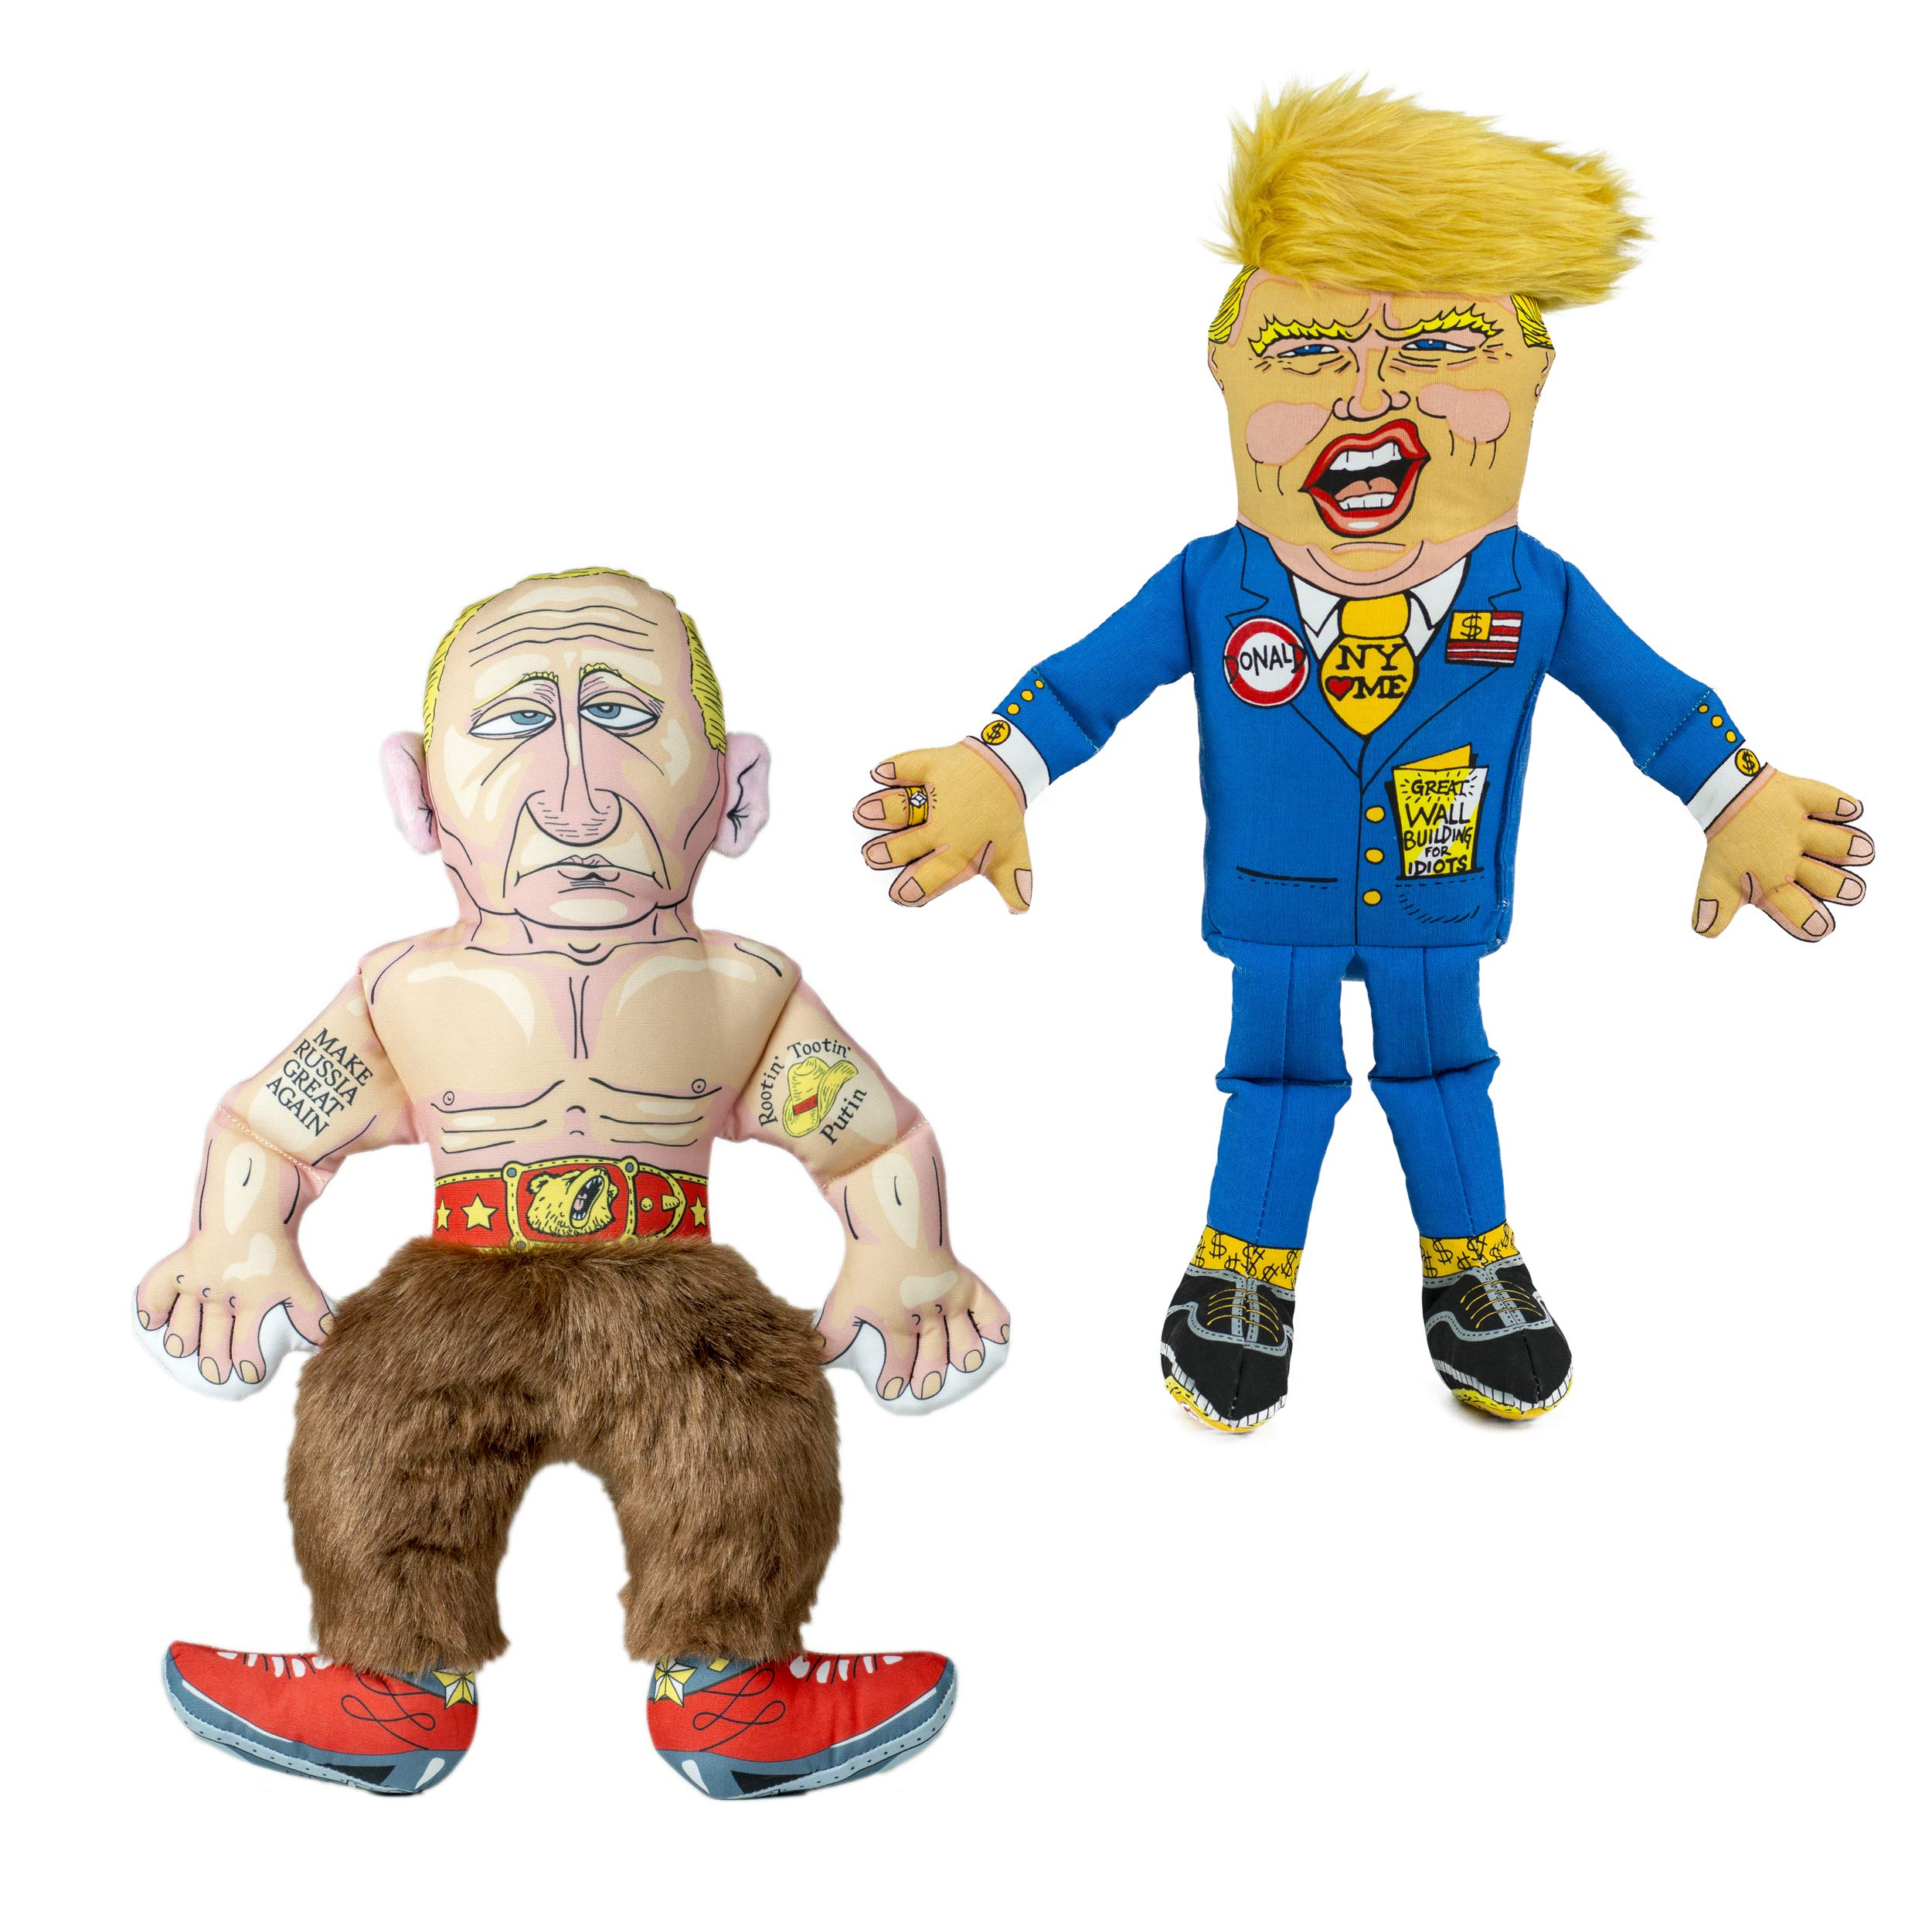 FUZZU Collusion Duo Political Parody (Donald Trump and Vladimir Putin) Dog Toys with Squeaker - Small to Large Dog (17'') by FUZZU